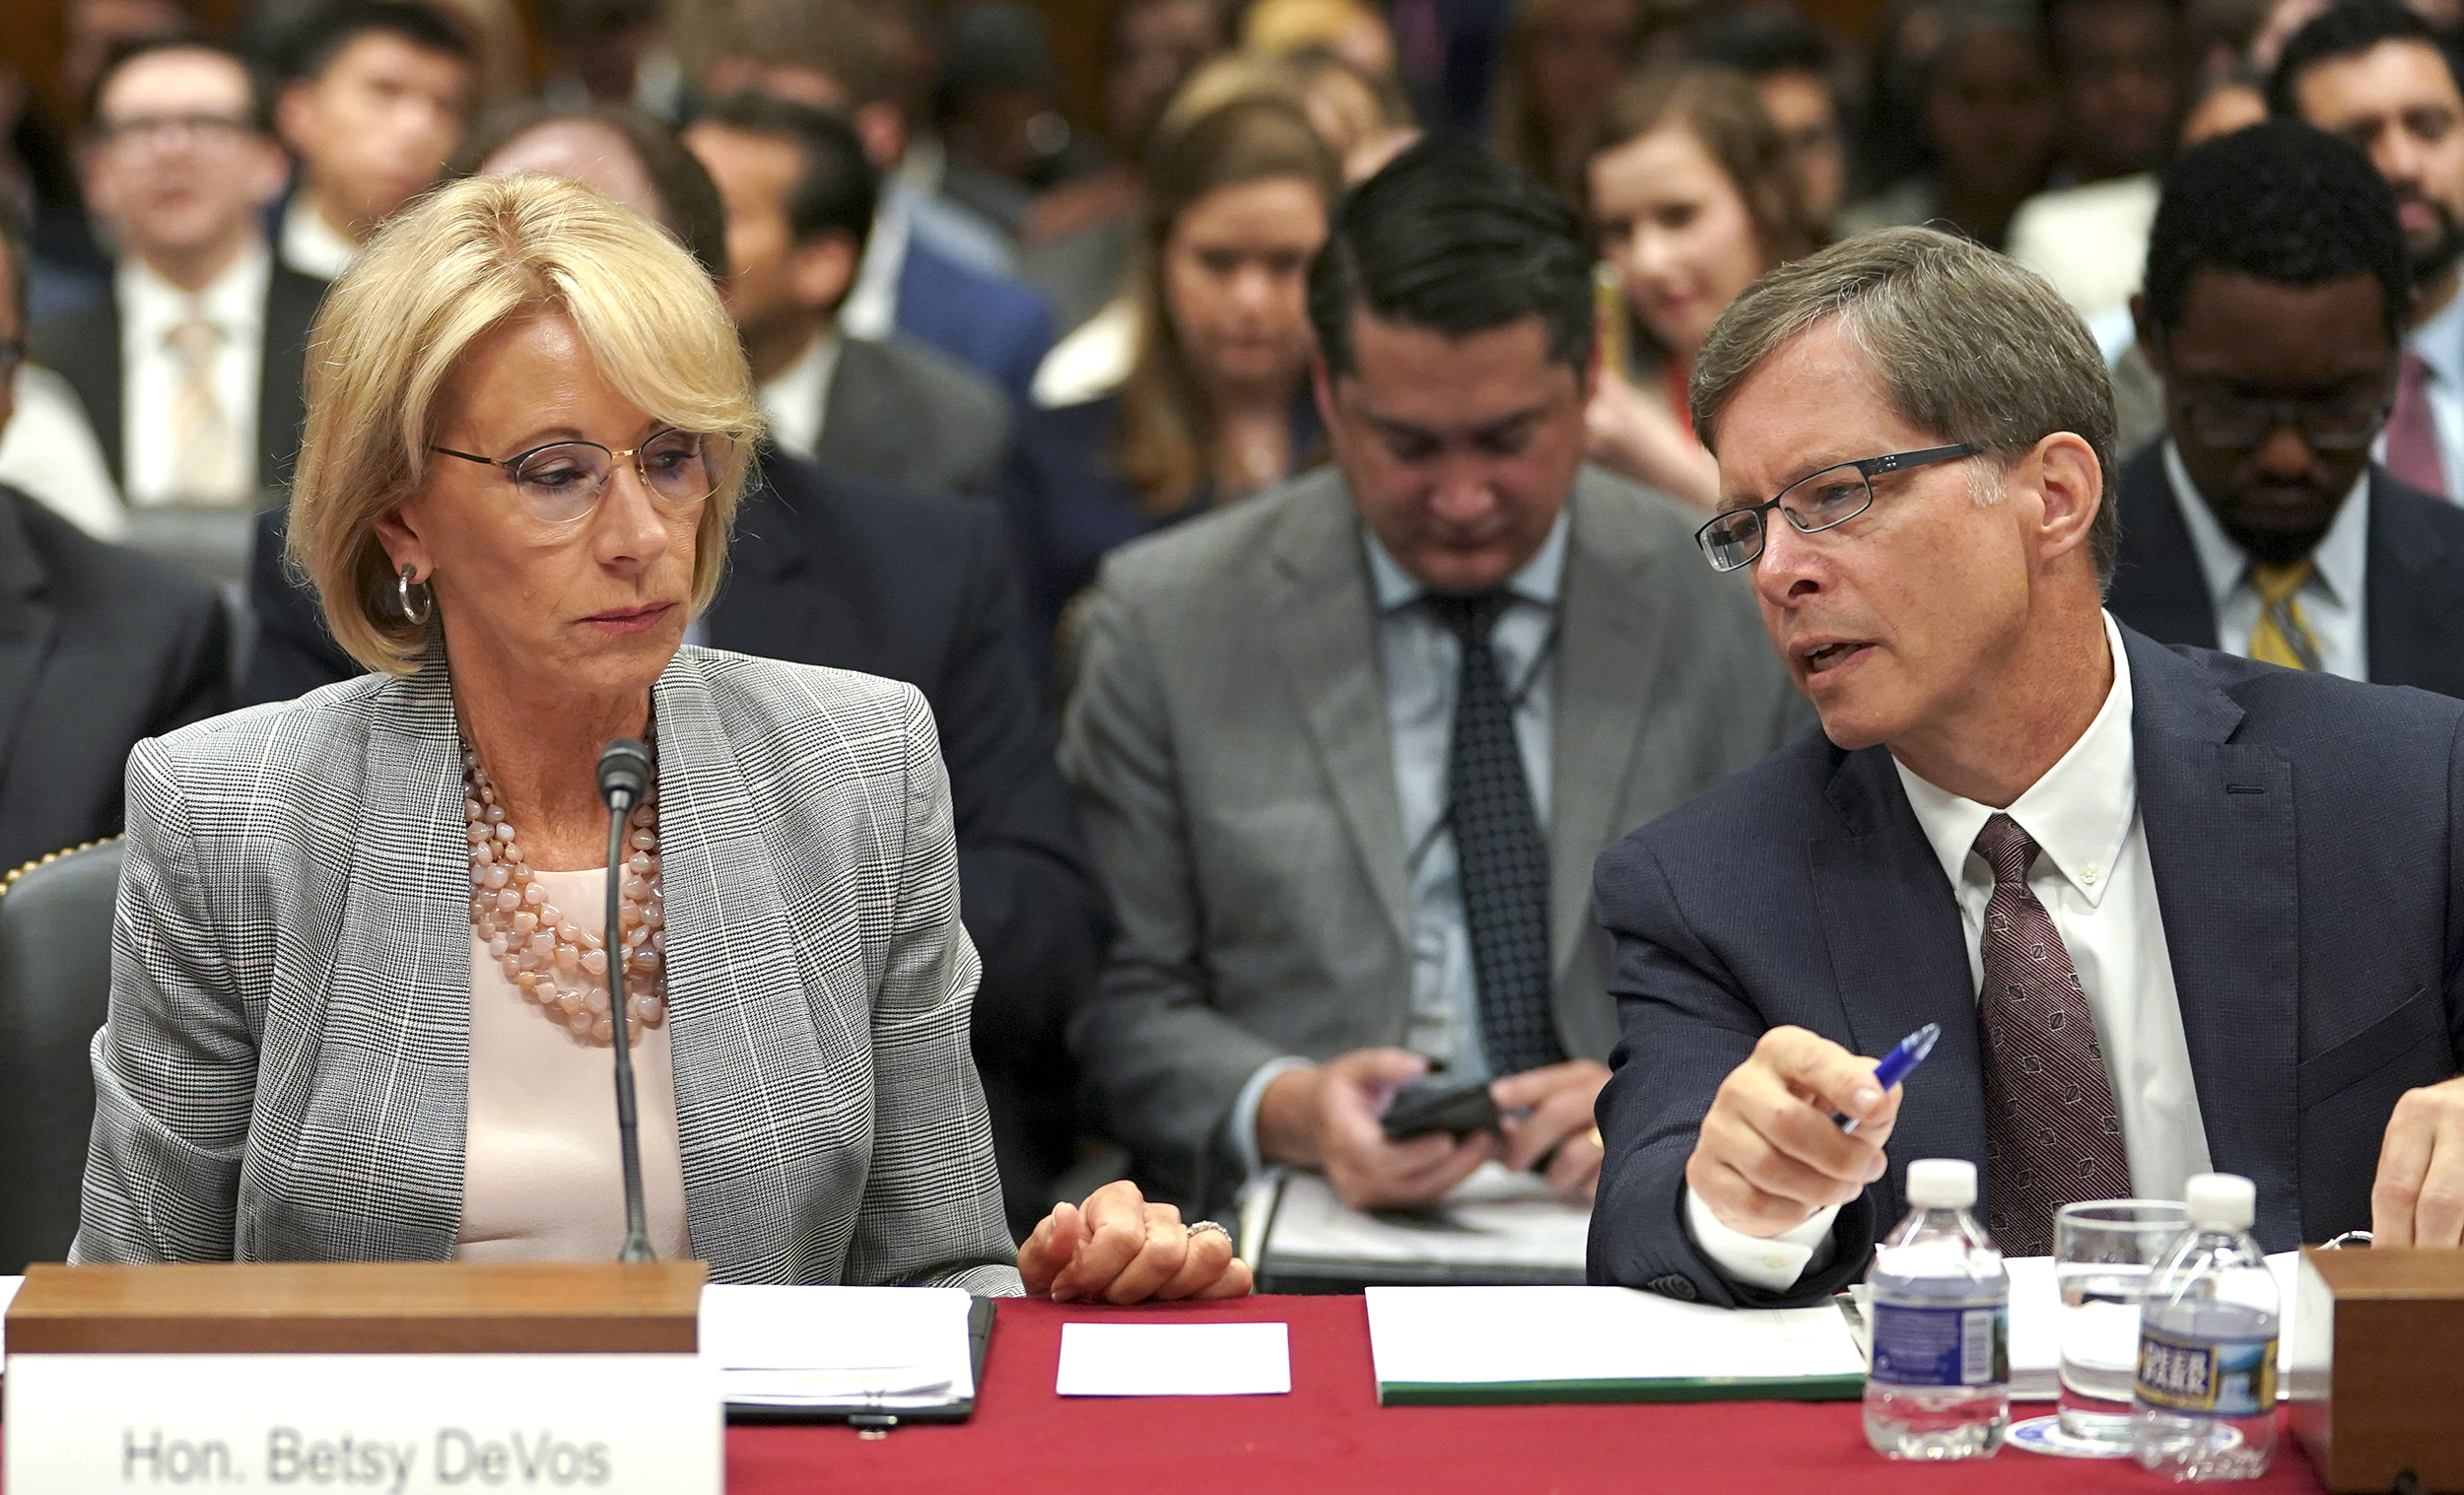 Betsy Devos Wont Be Doing Too Much As >> Betsy Devos Says Safety Committee Formed After School Shootings Won